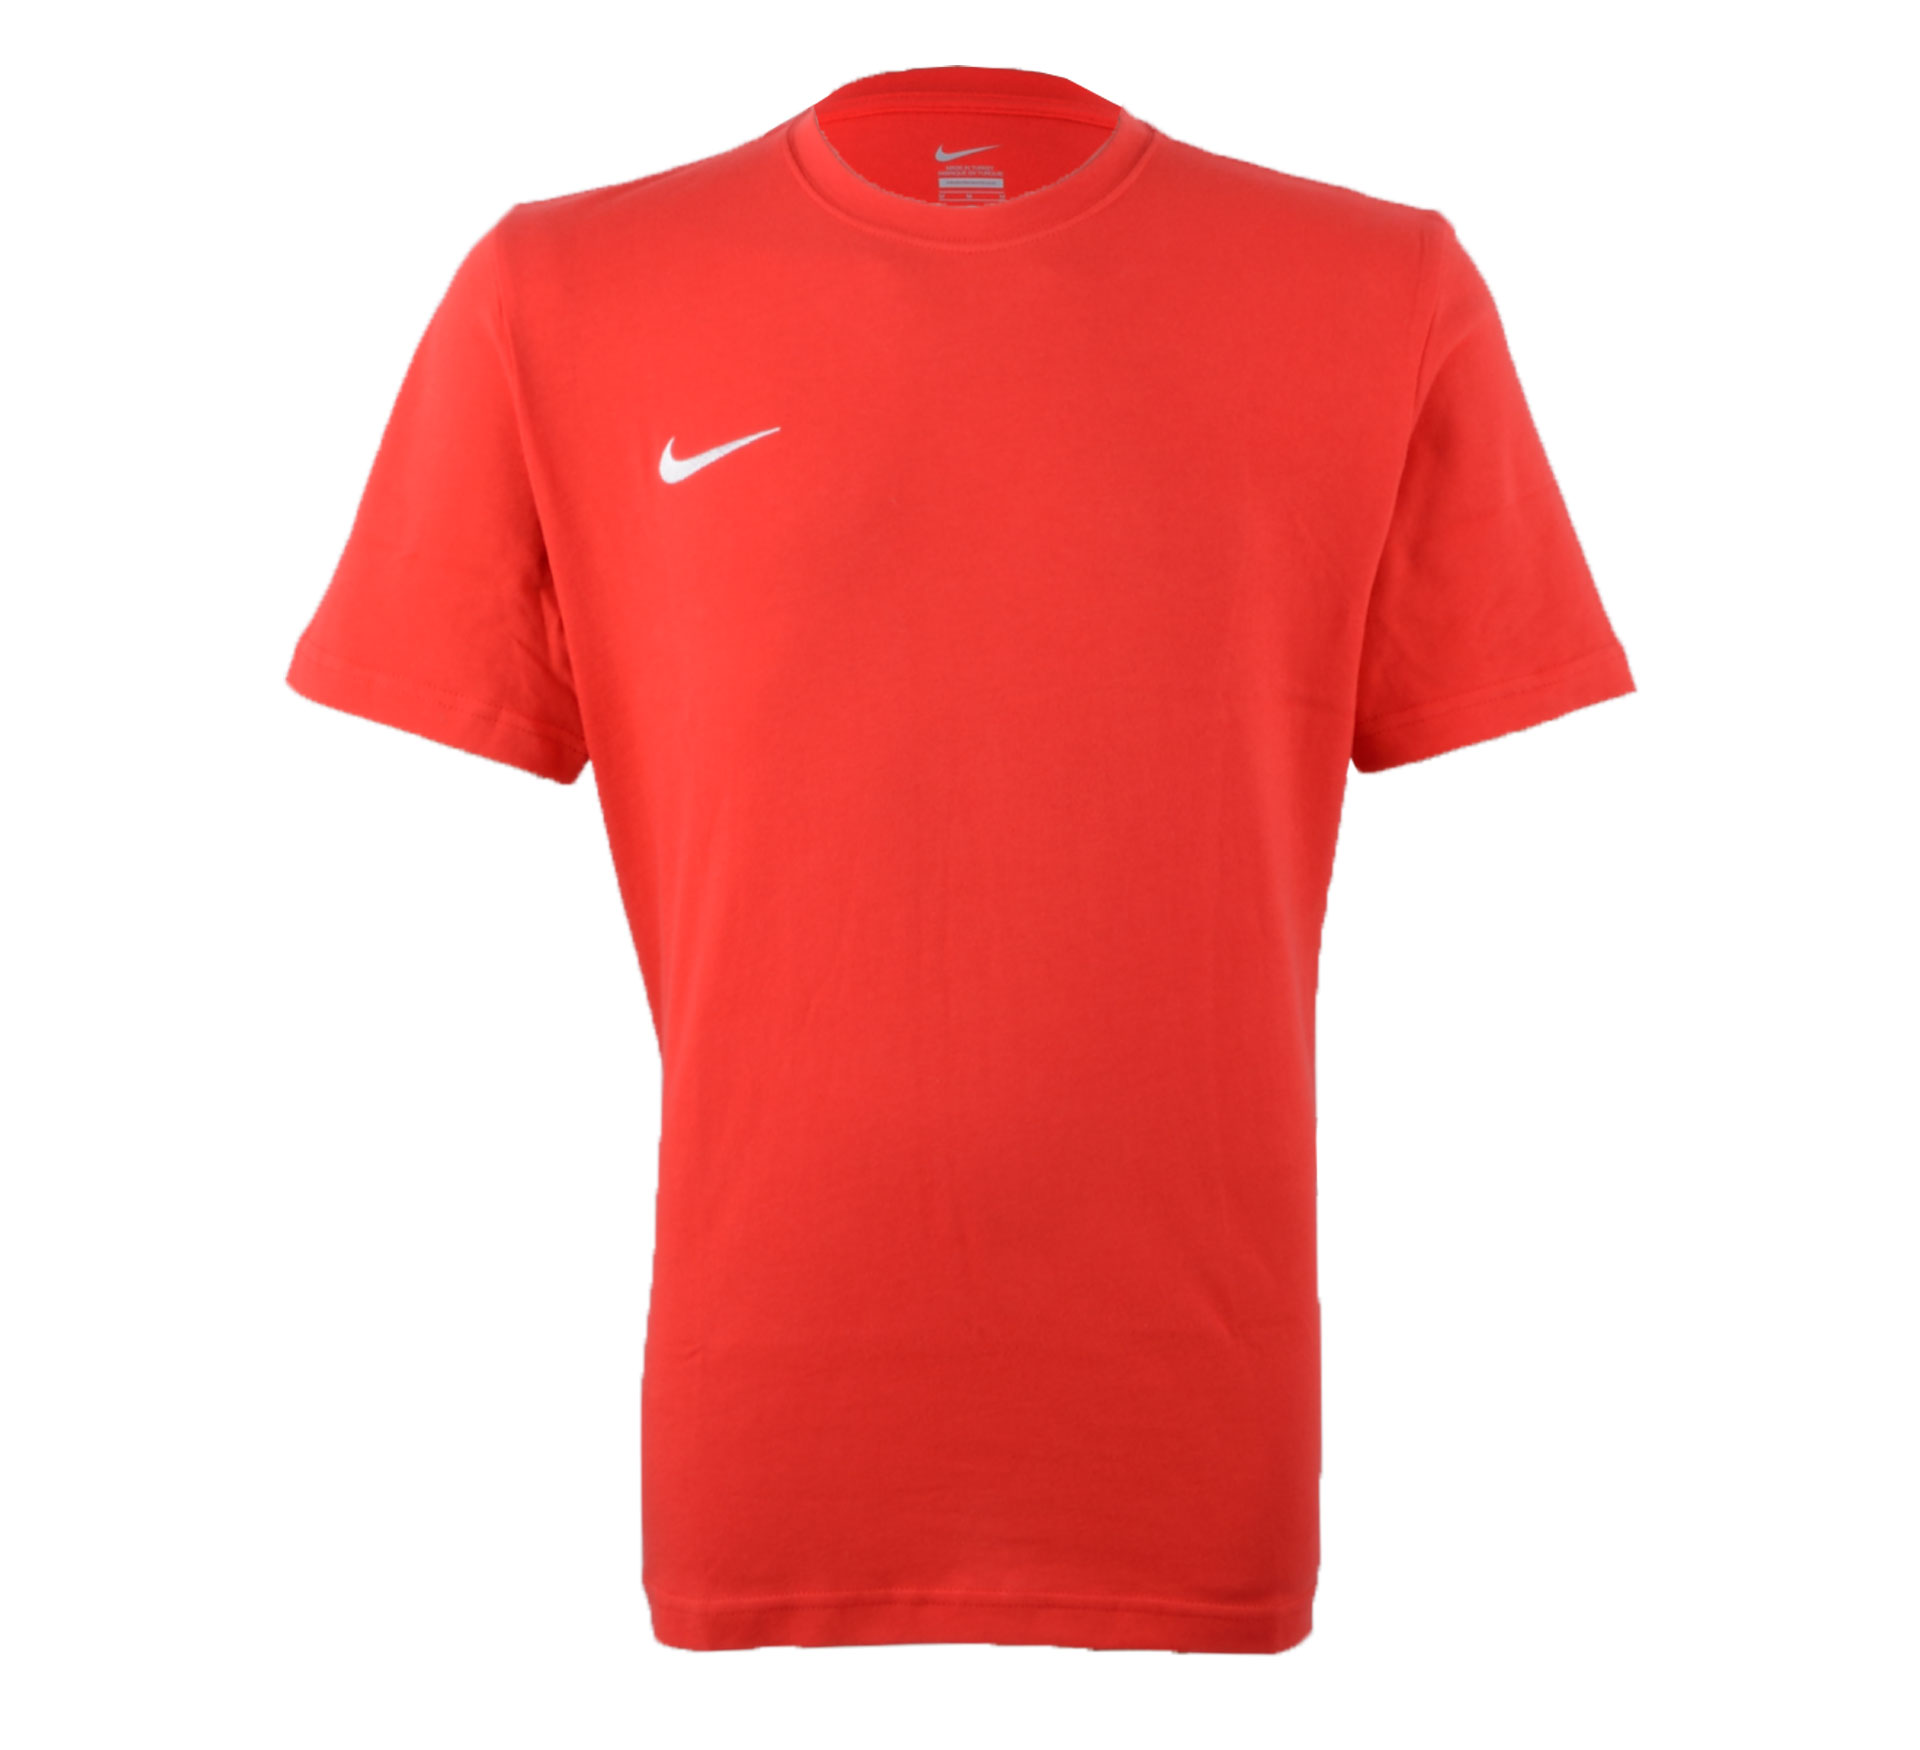 Nike Express Core T-shirt Heren rood - wit